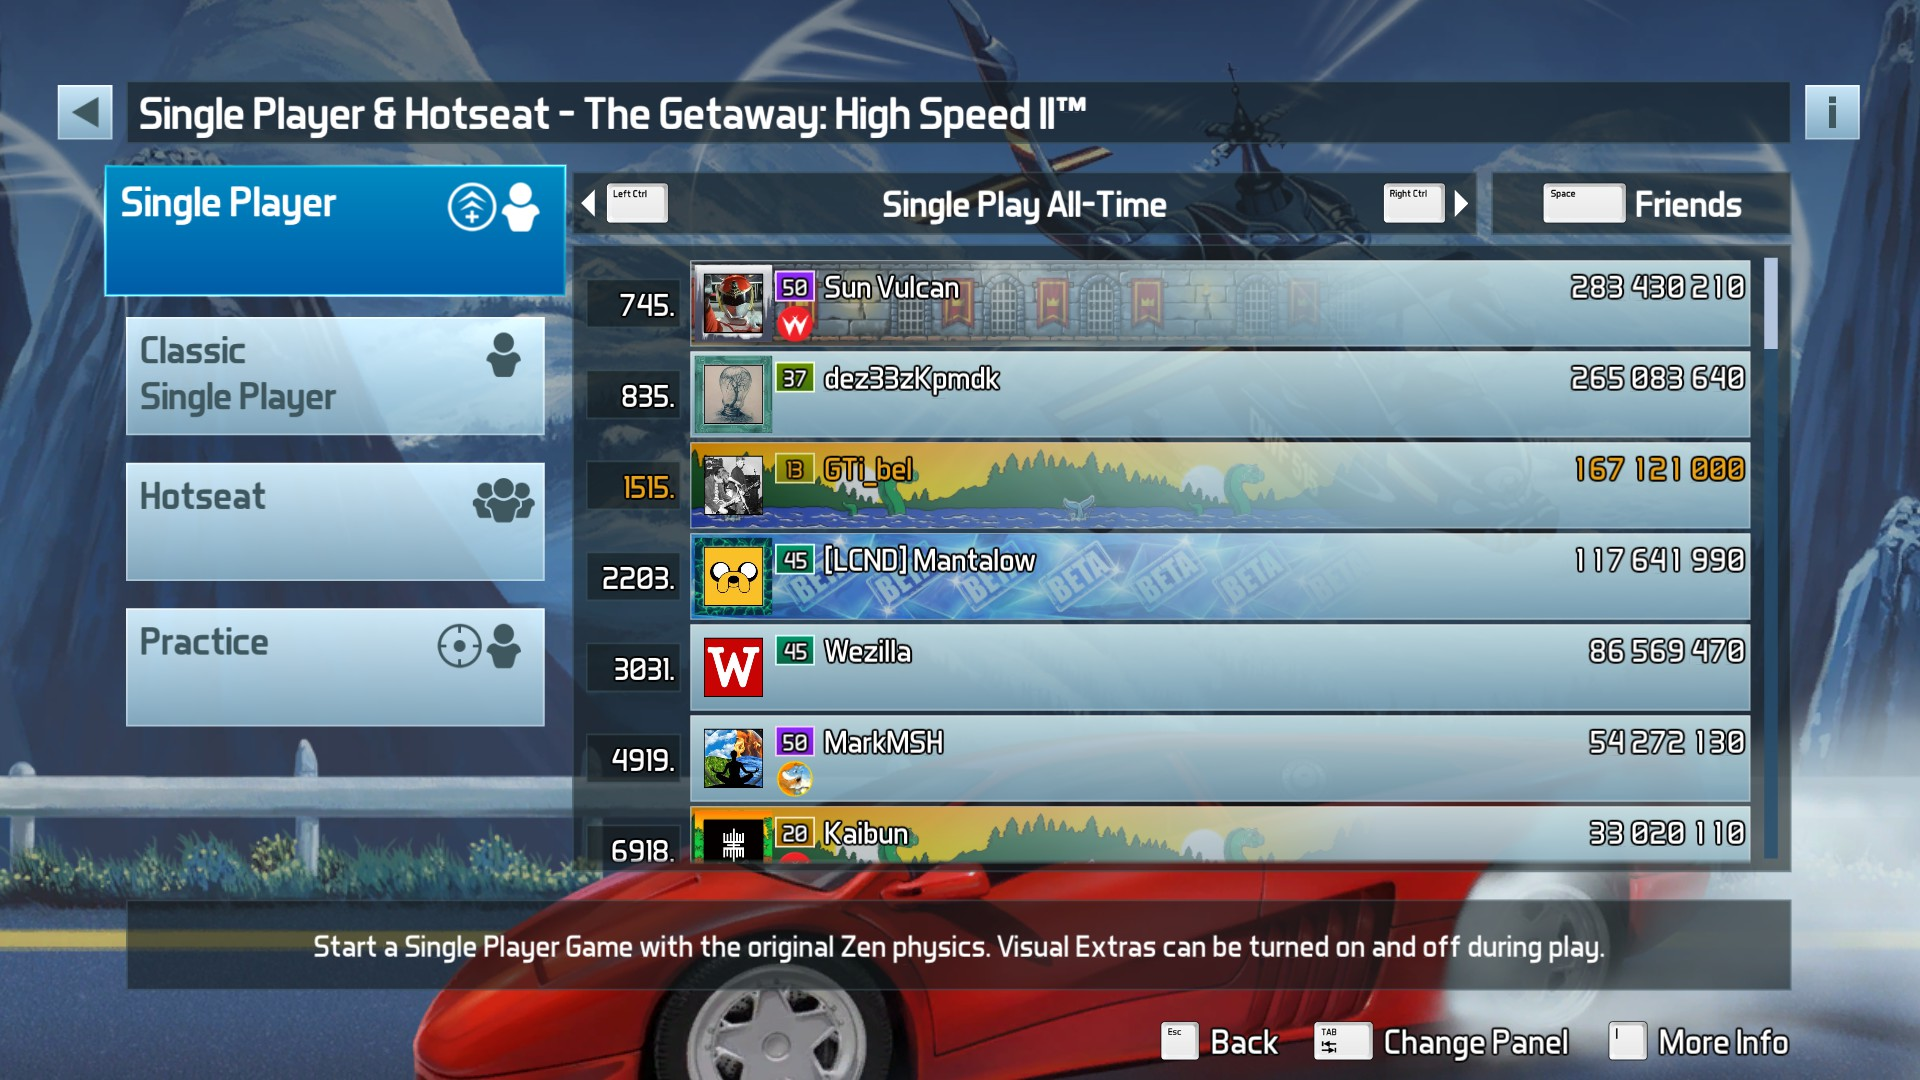 GTibel: Pinball FX3: The Getaway: High Speed II [Standard] (PC) 167,121,000 points on 2020-01-15 09:23:52